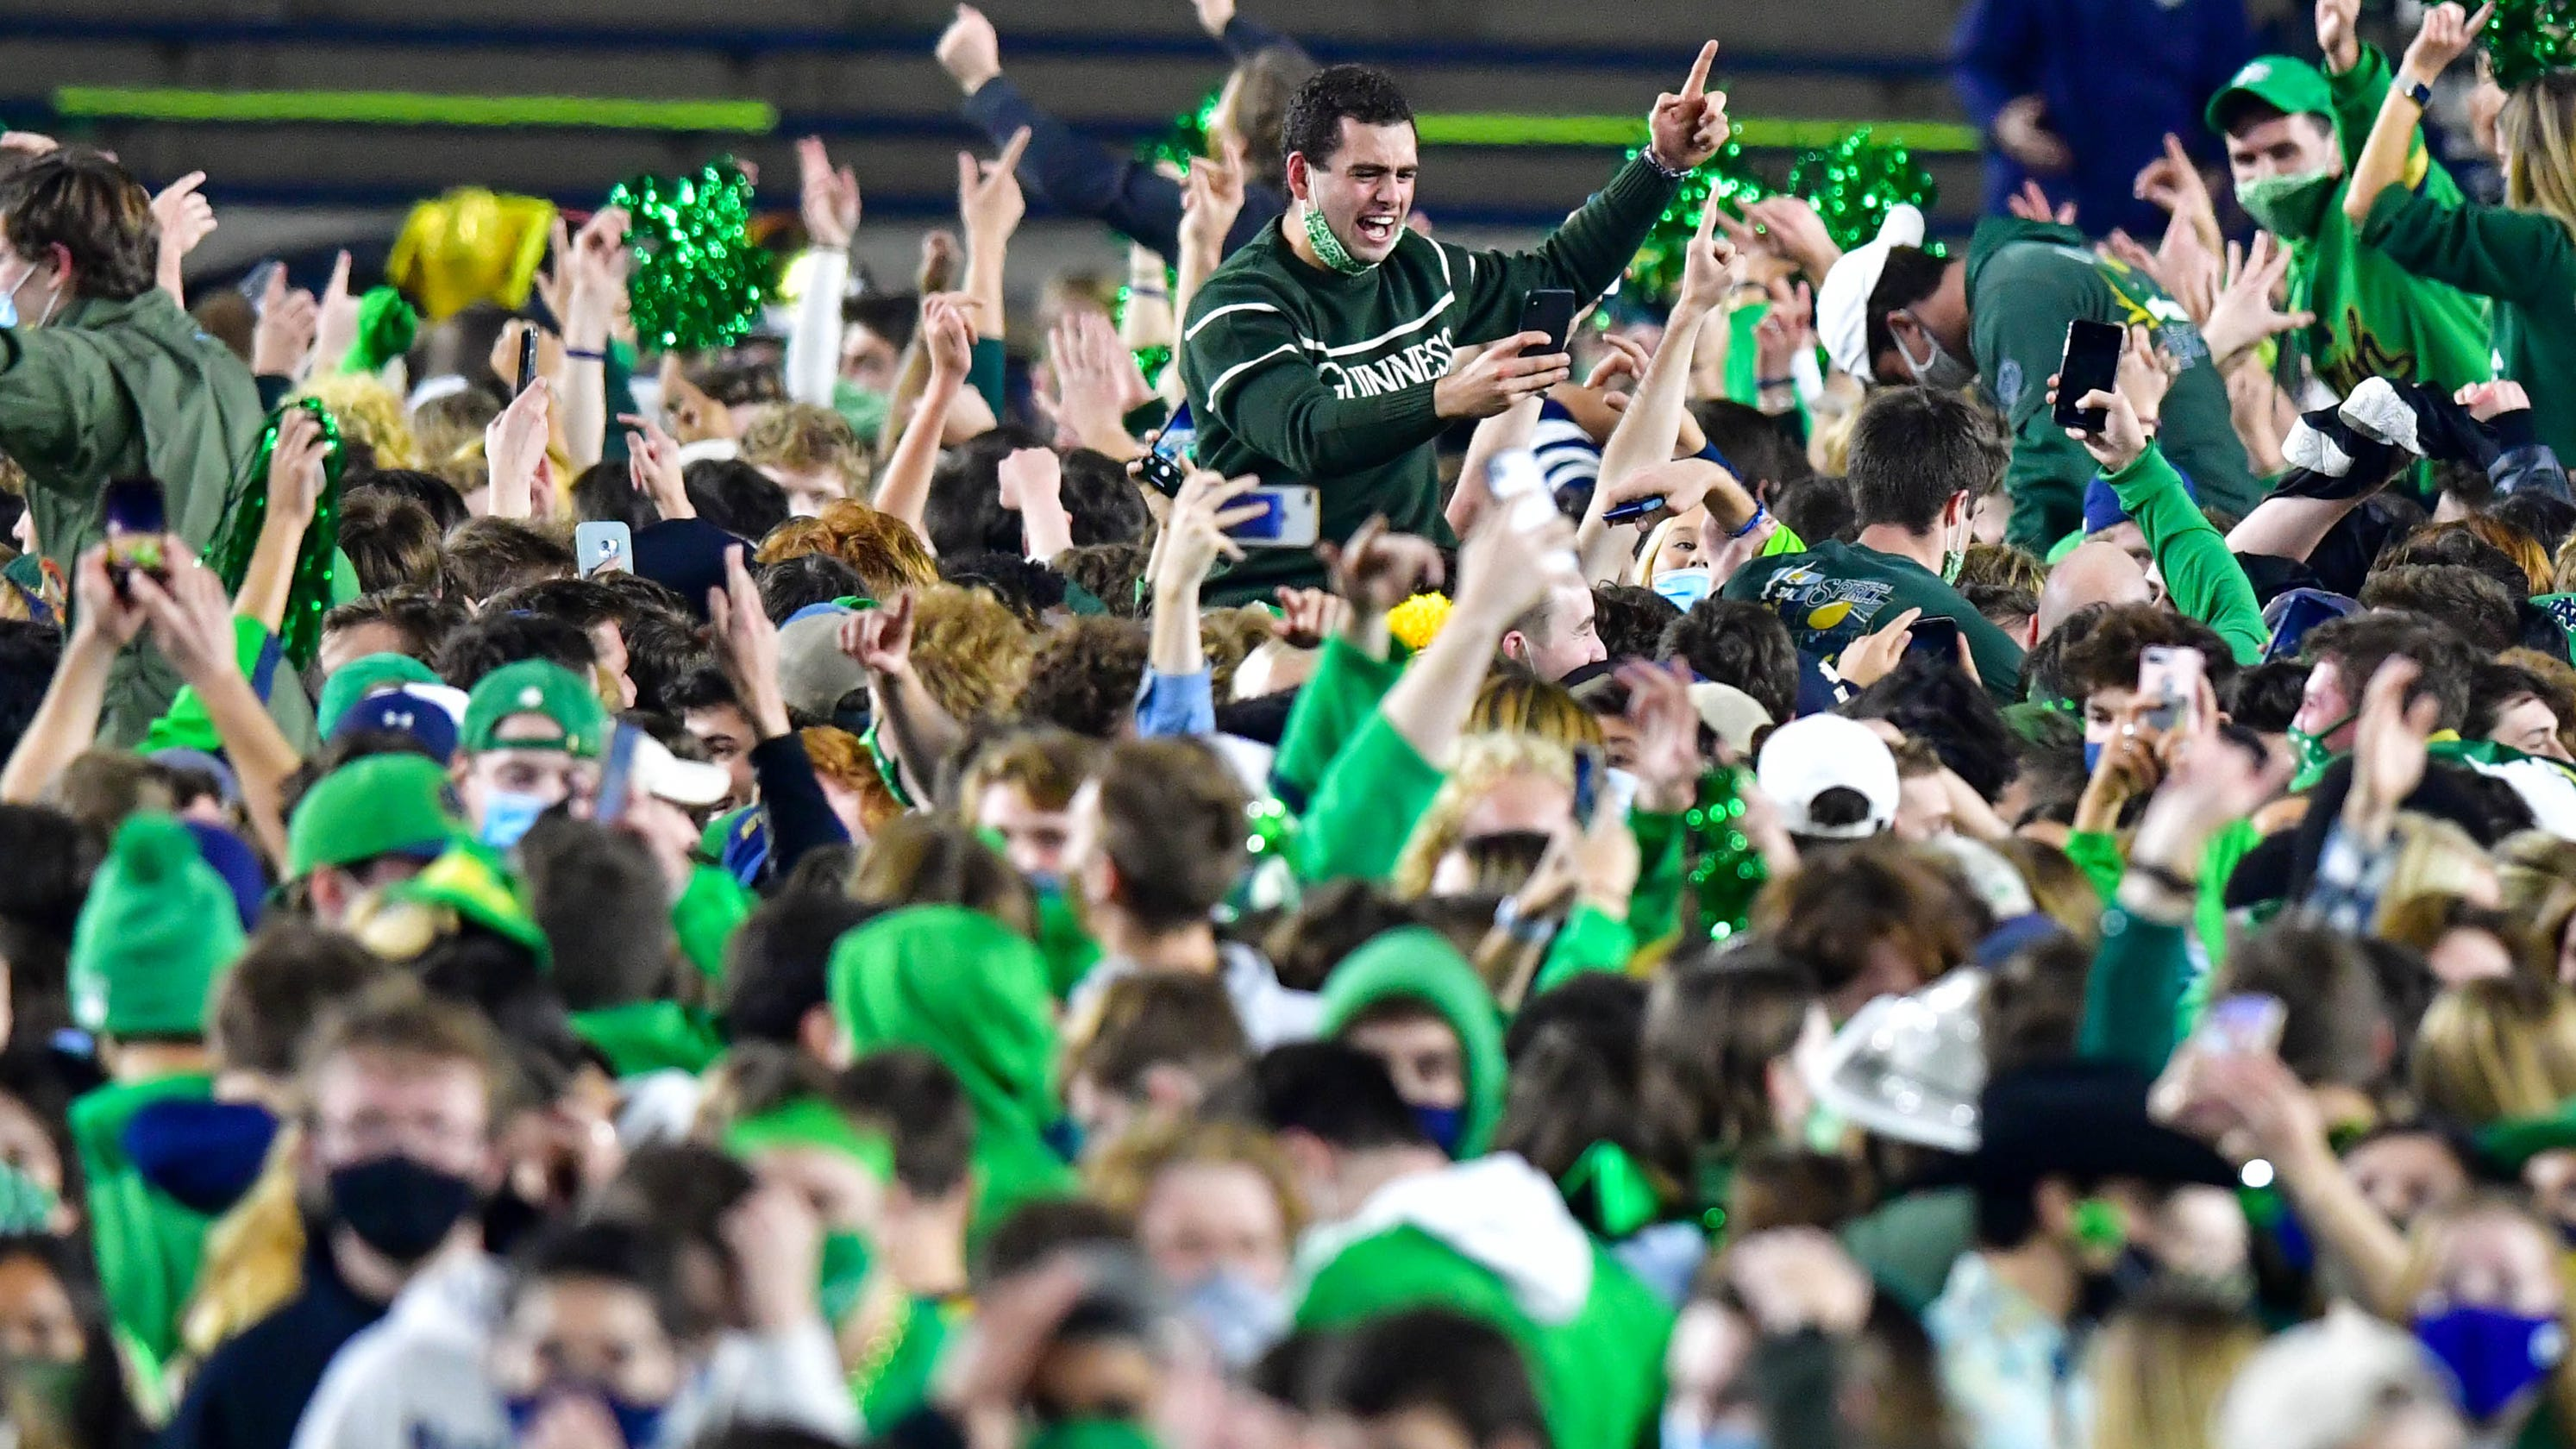 Opinion: If Notre Dame beats Clemson, College Football Playoff committee faces daunting decision